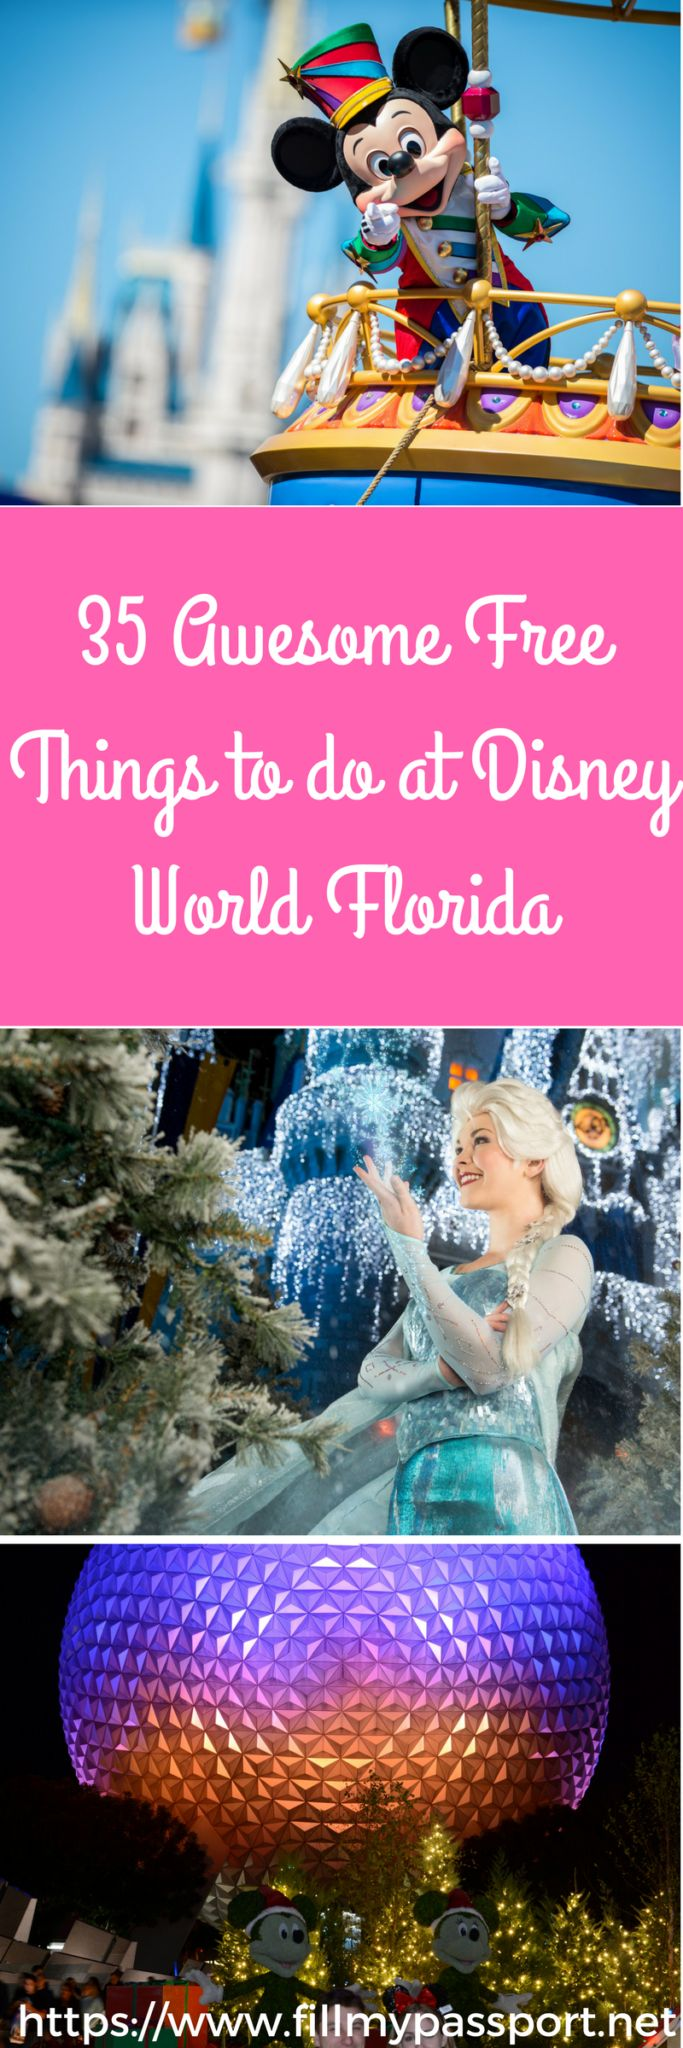 Trips to Disney can be quite expensive. Check out our 35 Awesome Free Things to Do which will add some pixie dust to your Disney world trip!